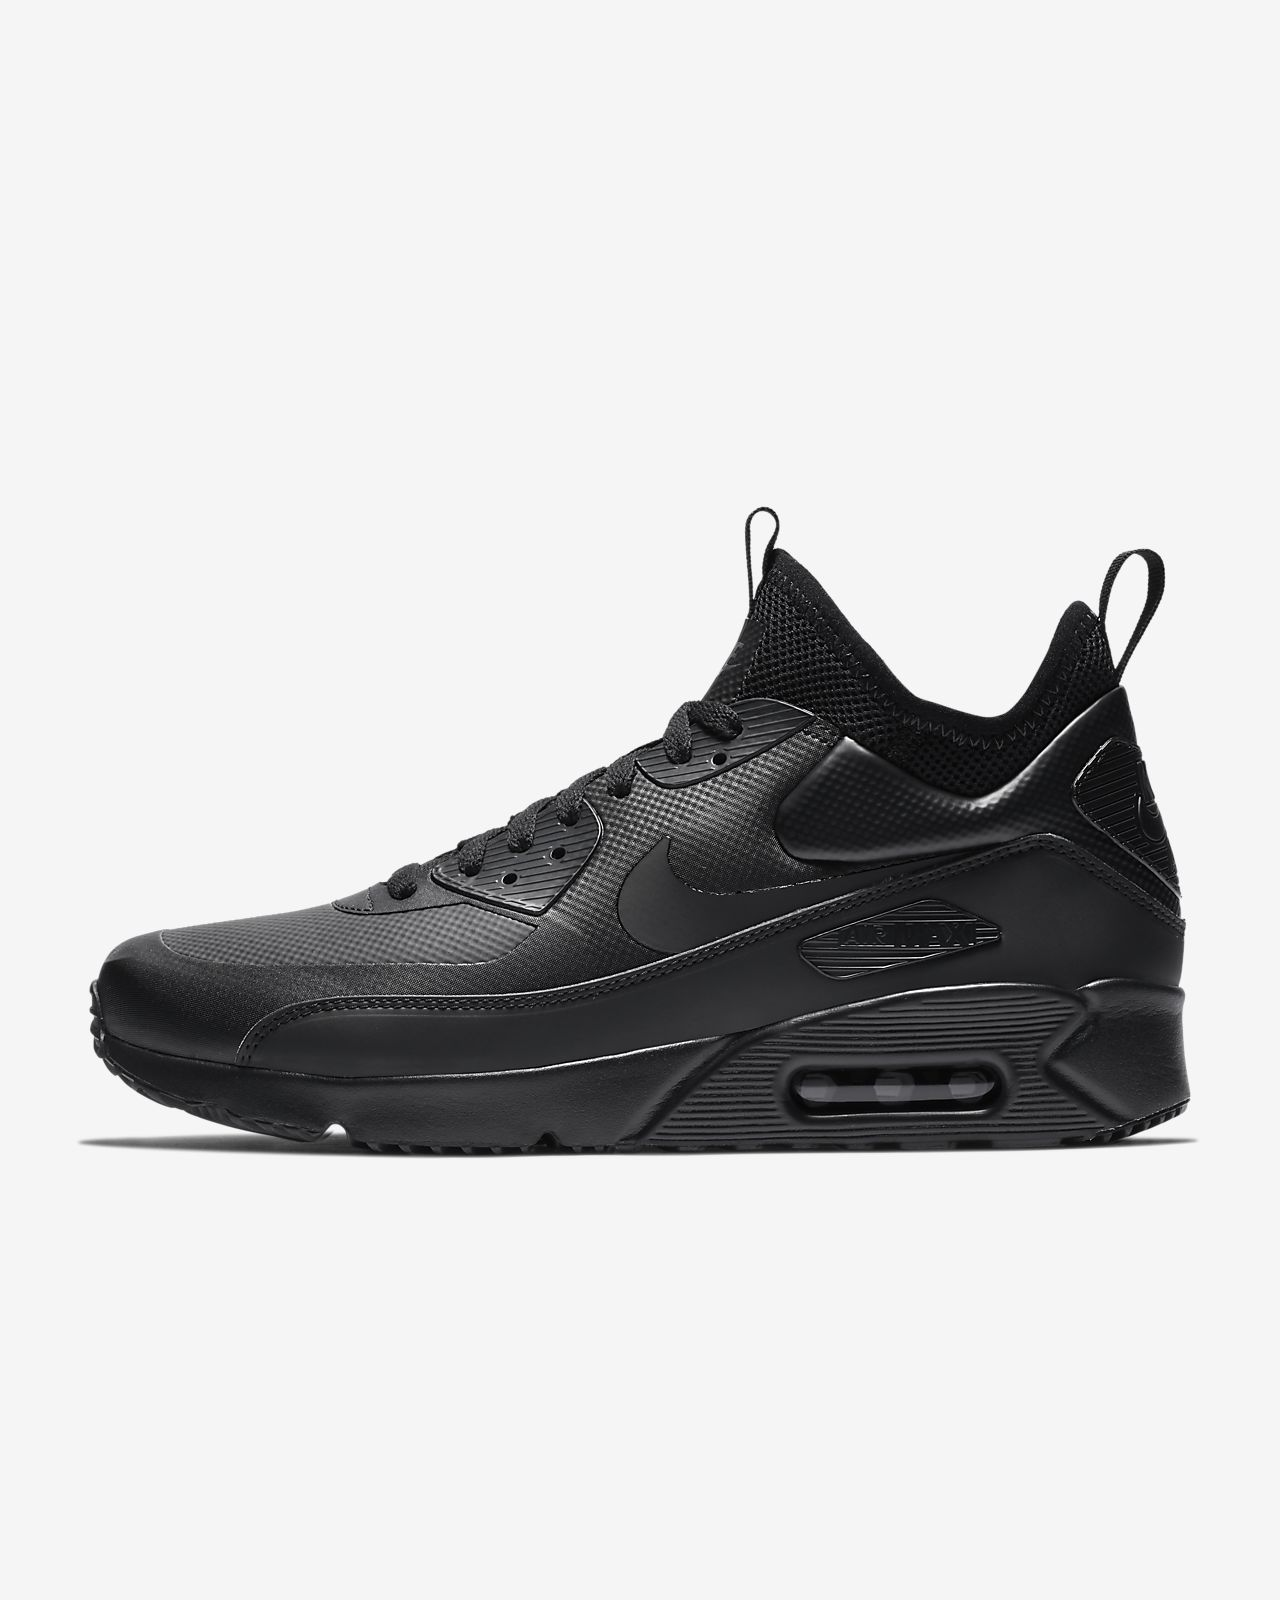 Mid Air 90 Nike Winter Be Max Chaussure Homme Ultra Pour 4XqAT5yKy